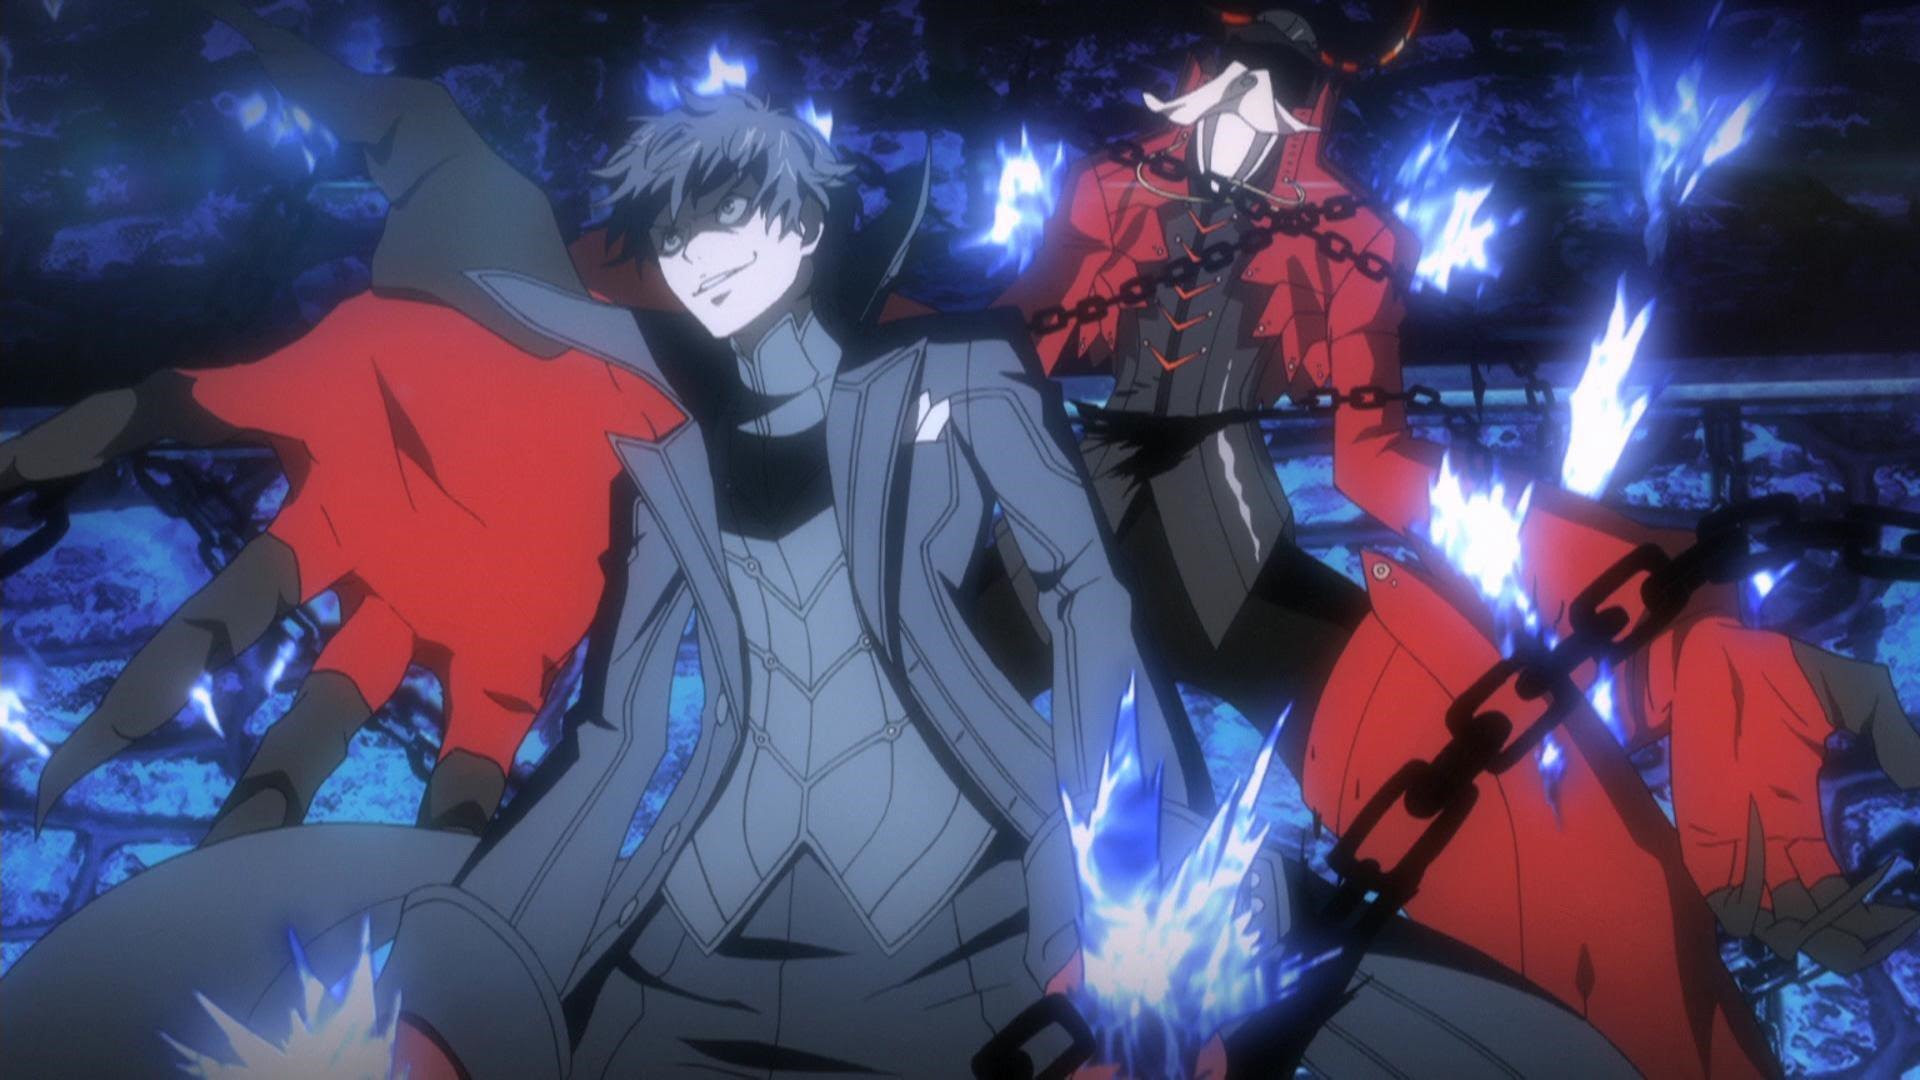 Here S Everything We Know About Persona 5 Geek And Sundry